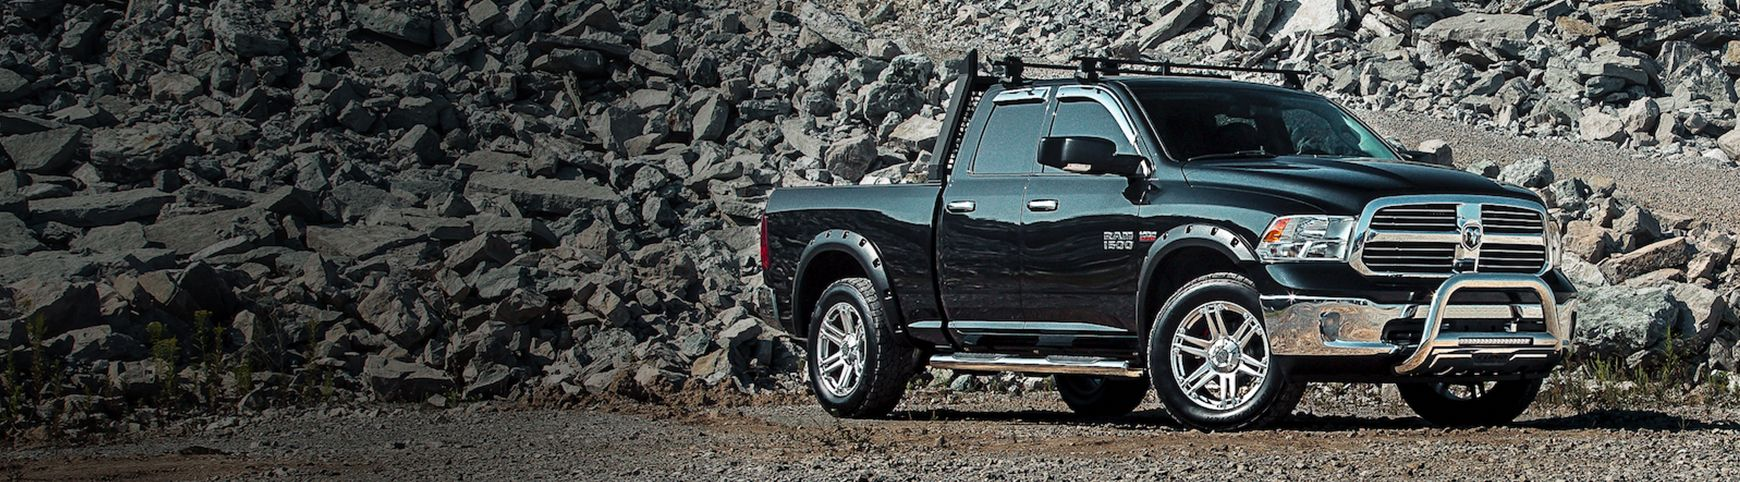 RAM1500 Accessories & Parts | Canadian Tire